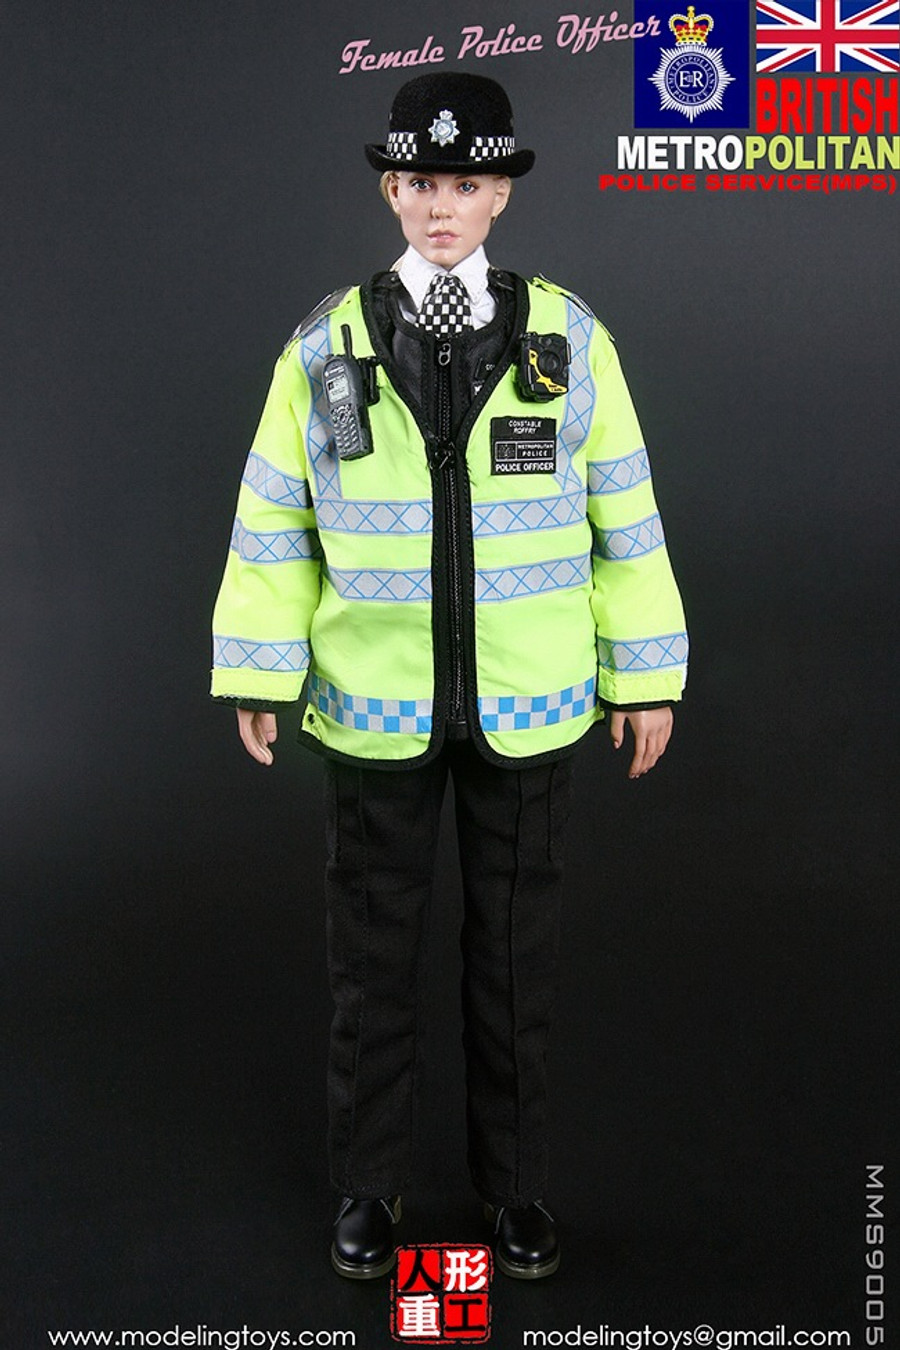 Modeling Toys - Military Series: British Metropolitan Police Service - Female Police Officer